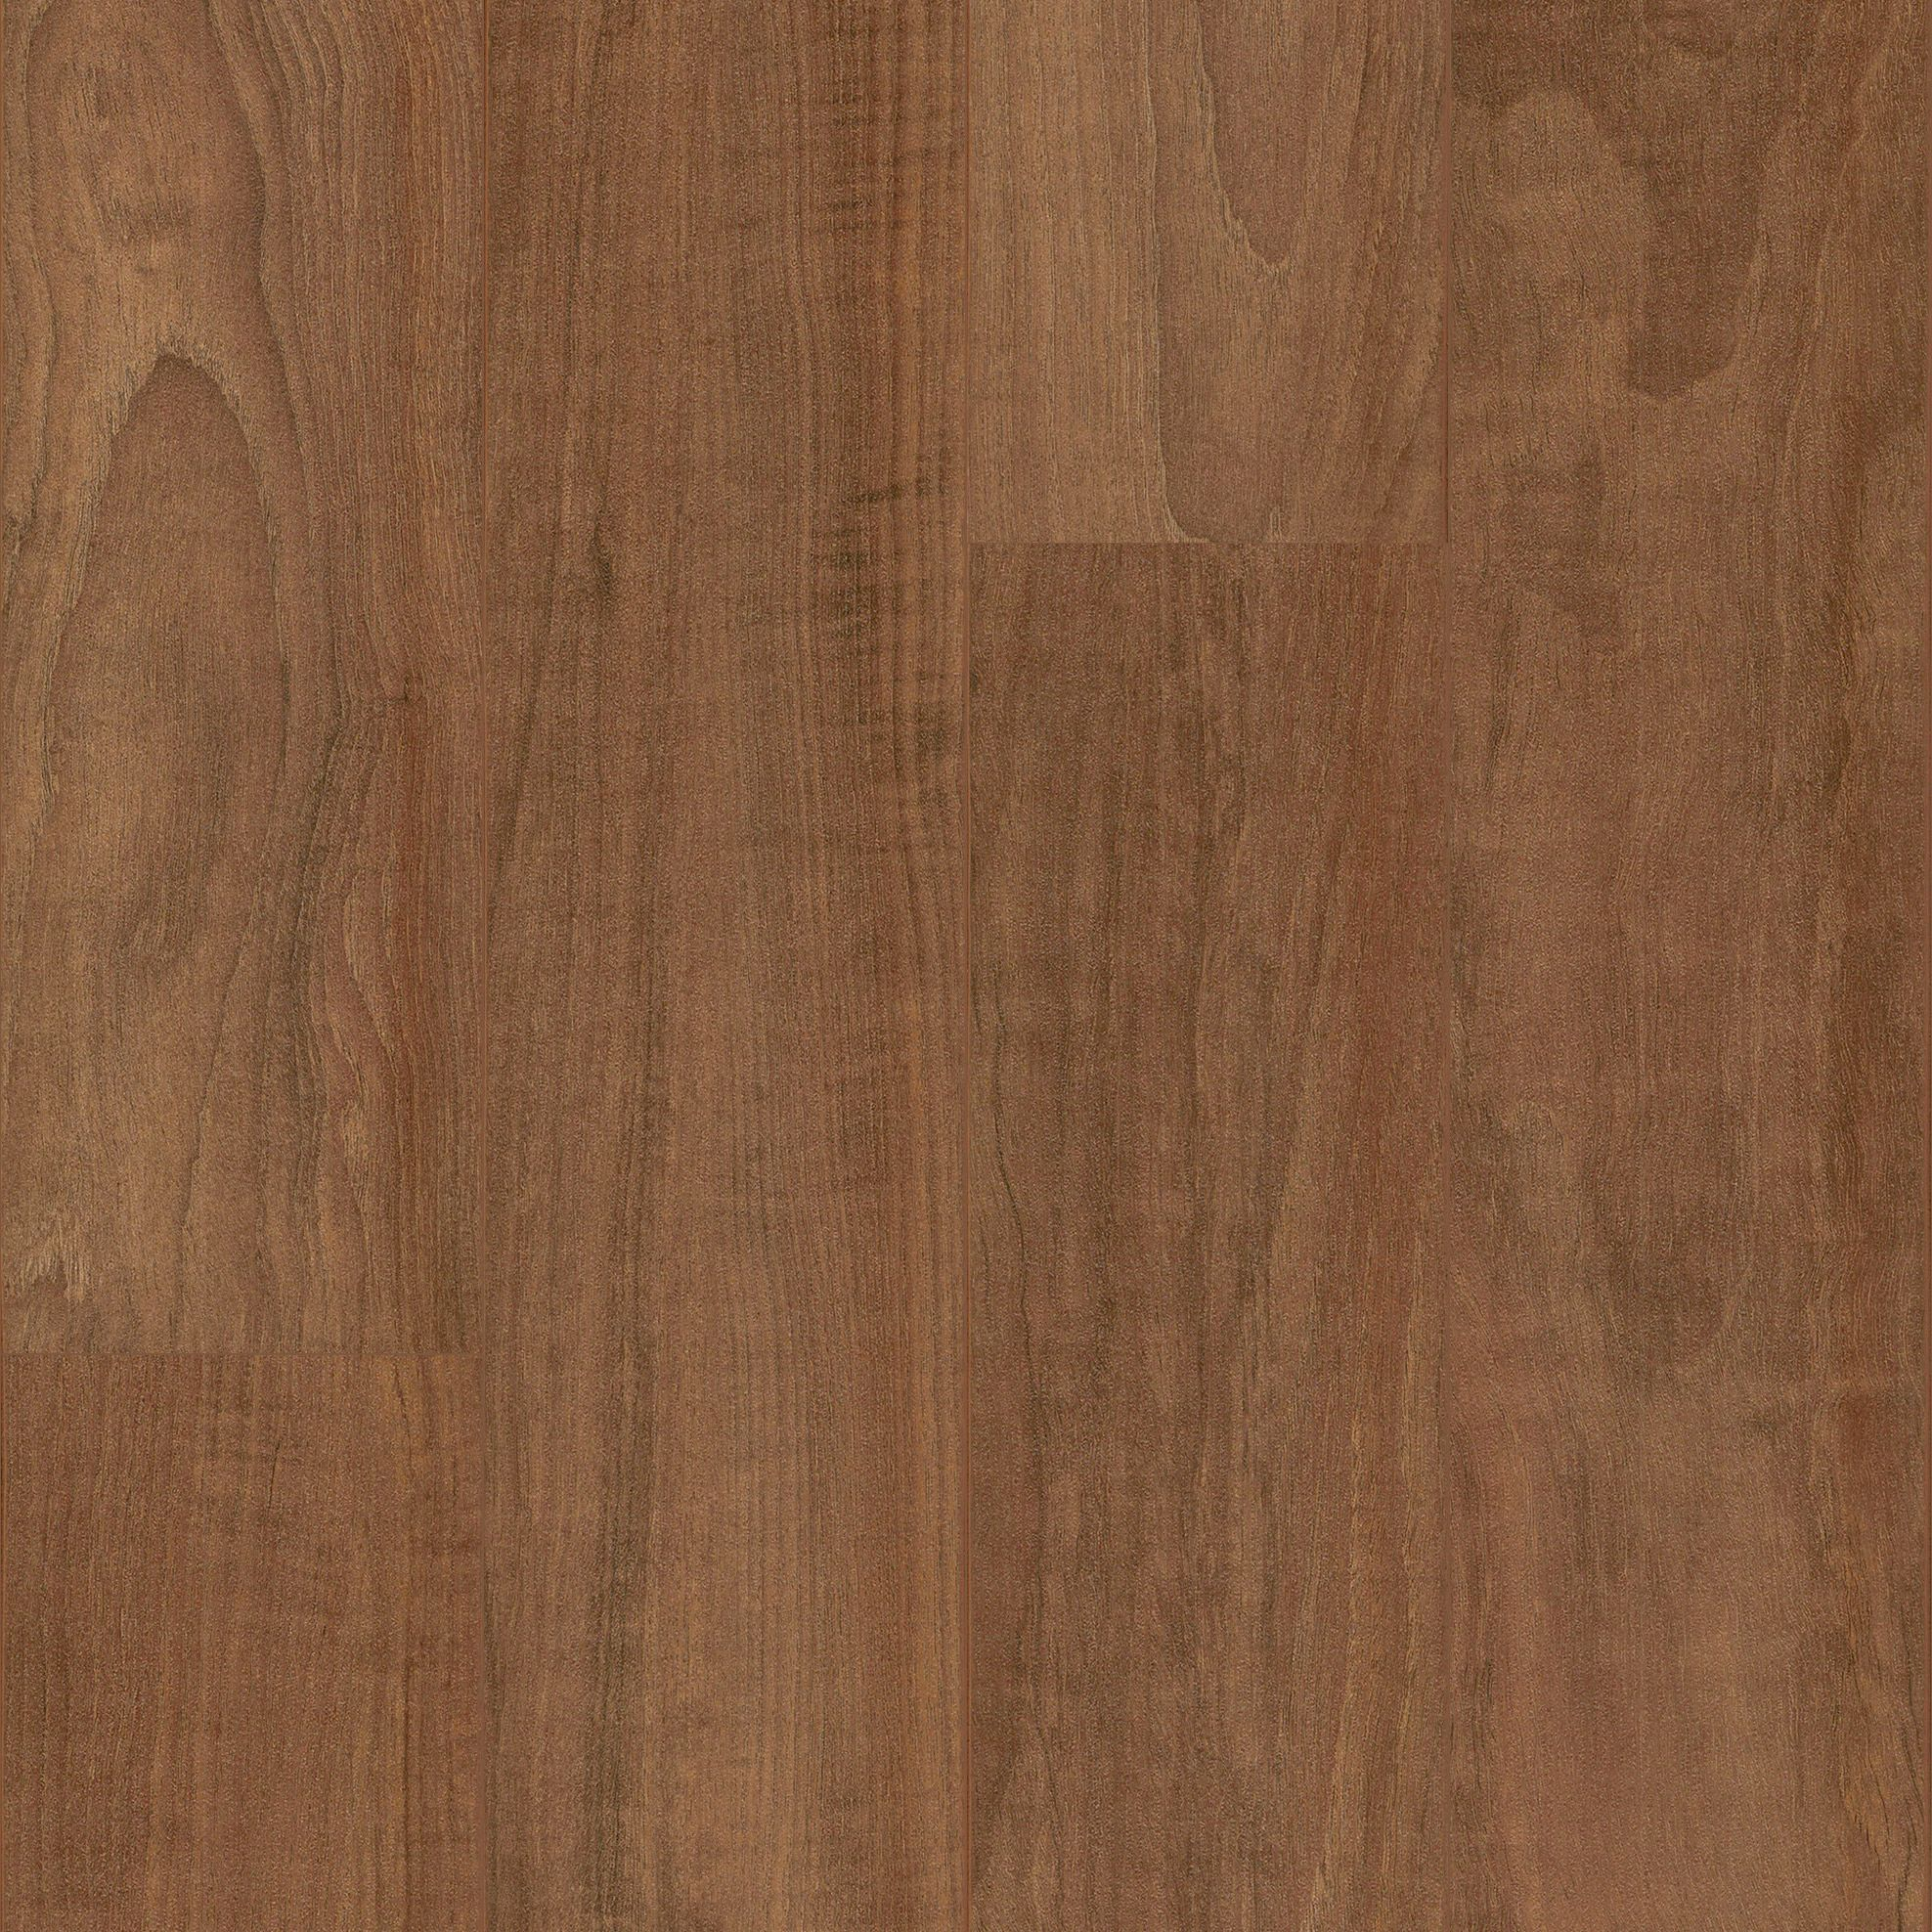 Tarkett New Frontier Teak Bronze 10mm 5 Wide Laminate Flooring With Images Laminate Flooring Laminate Flooring